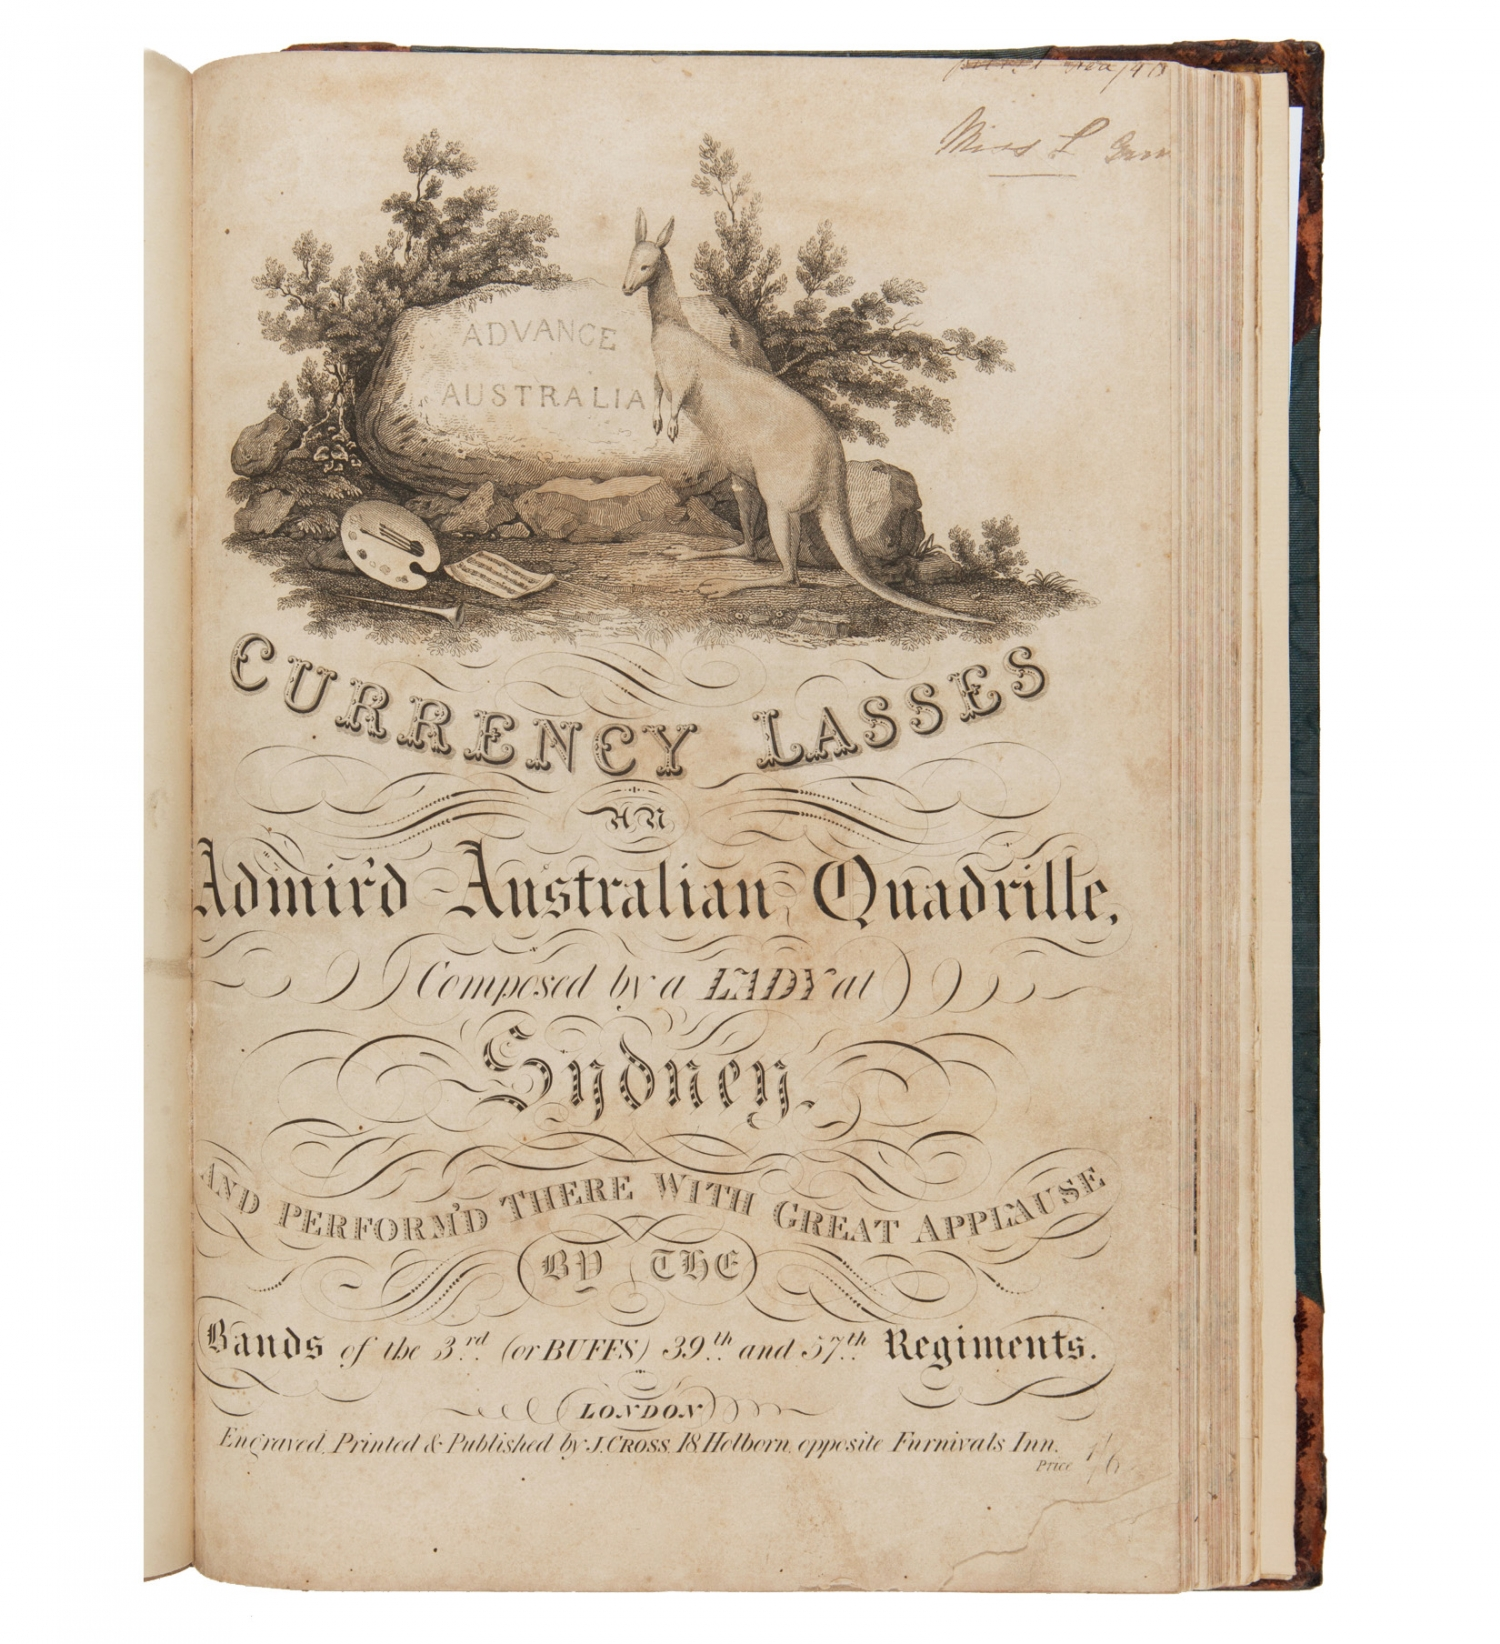 Cover page of 'Currency lasses, an admir'd Australian quadrille